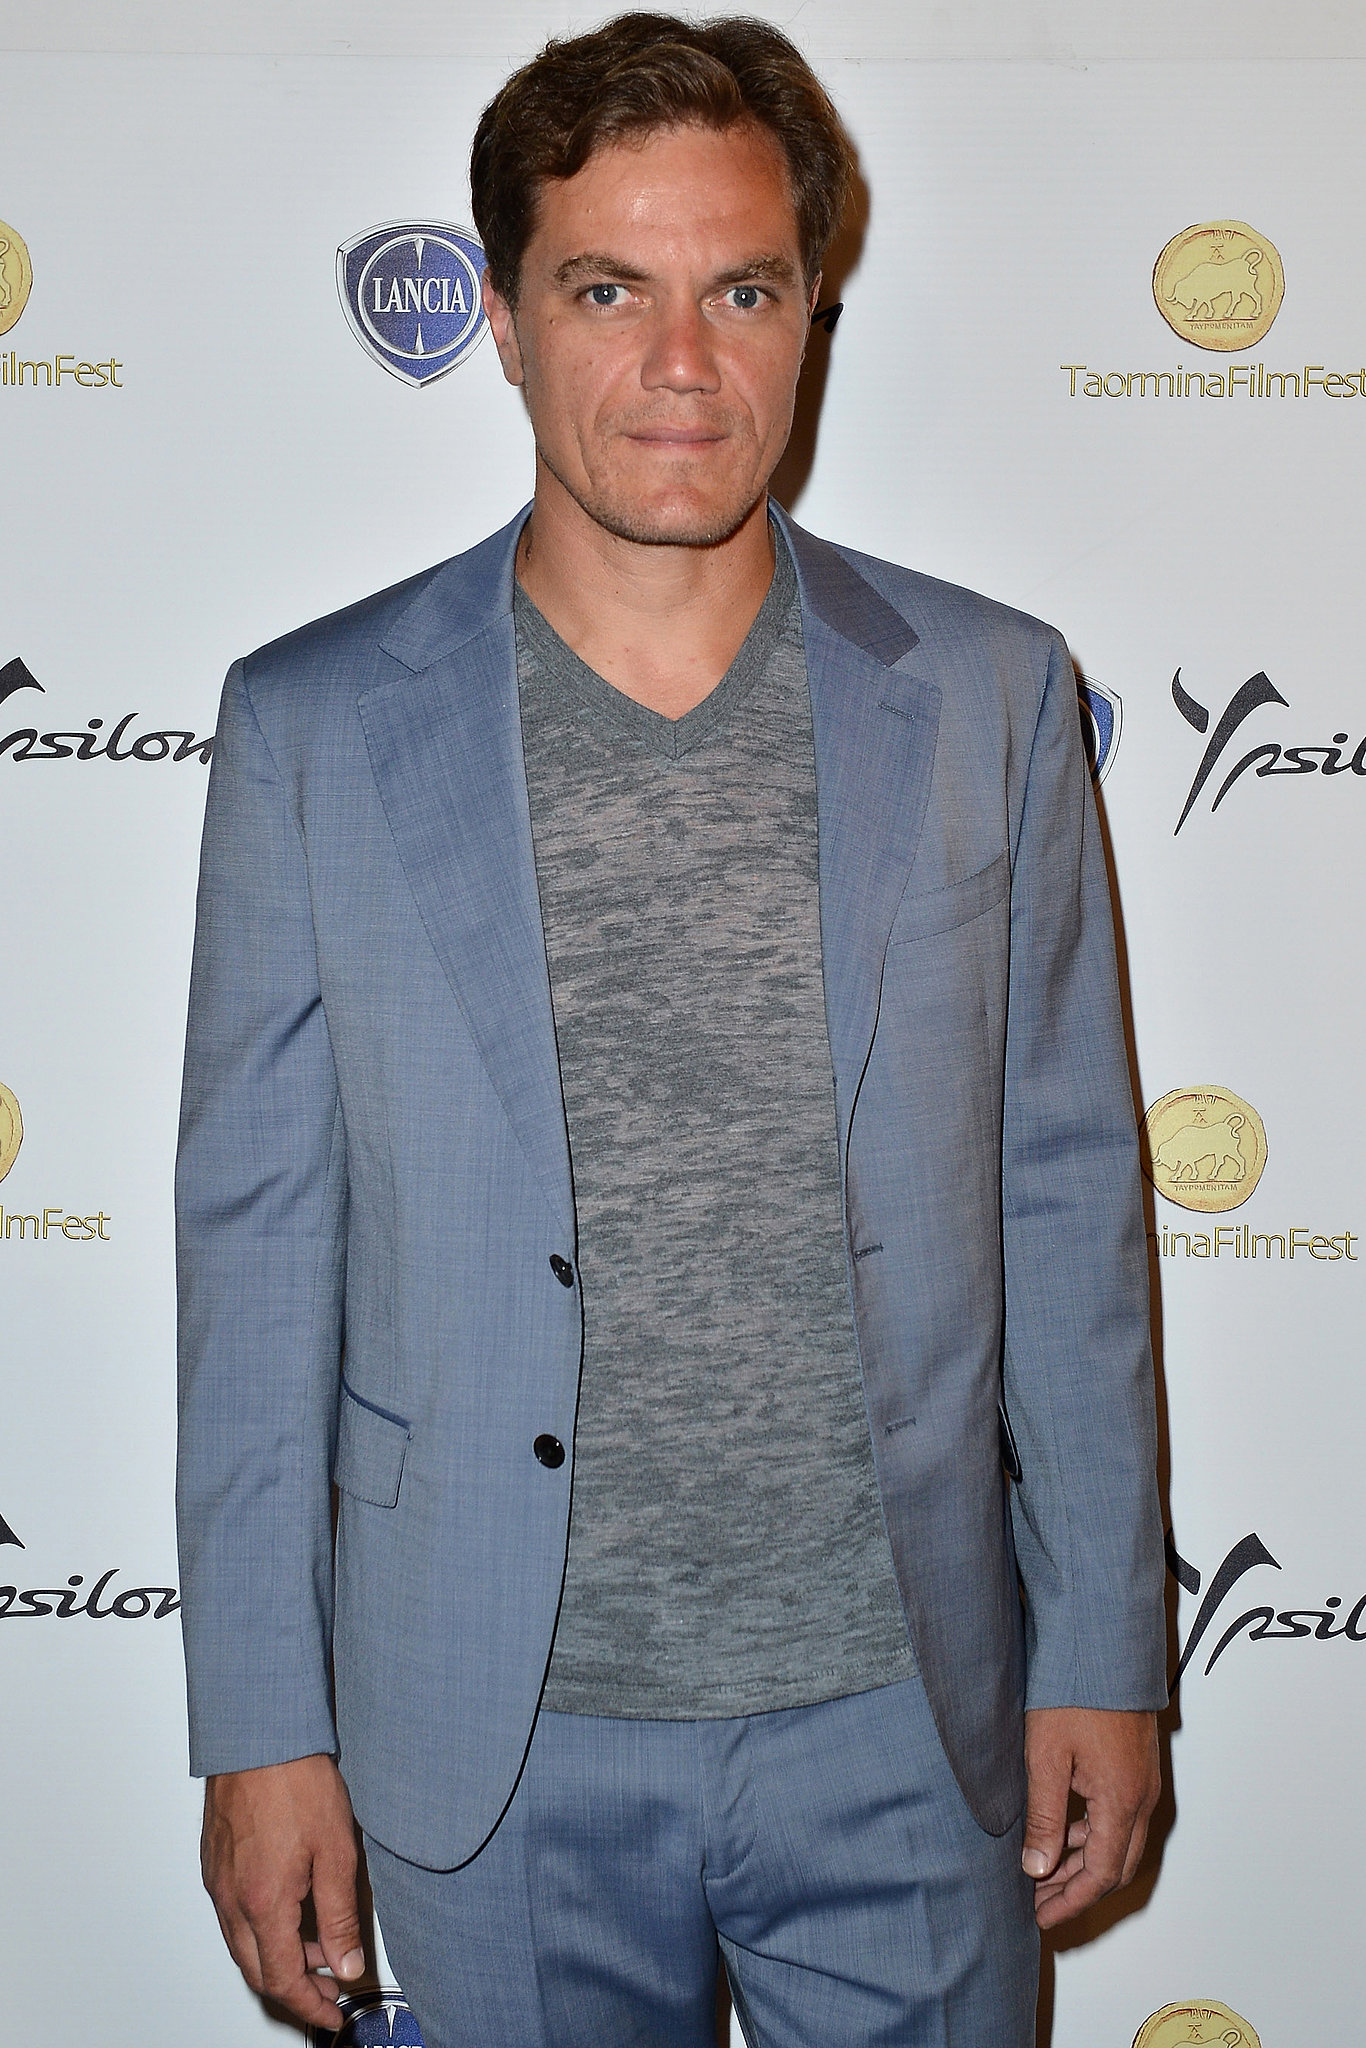 Michael Shannon joined 99 Homes, an indie drama starring Andrew Garfield. Shannon will be a real estate broker who Garfield goes to work for when he loses his own home in the economic crisis.